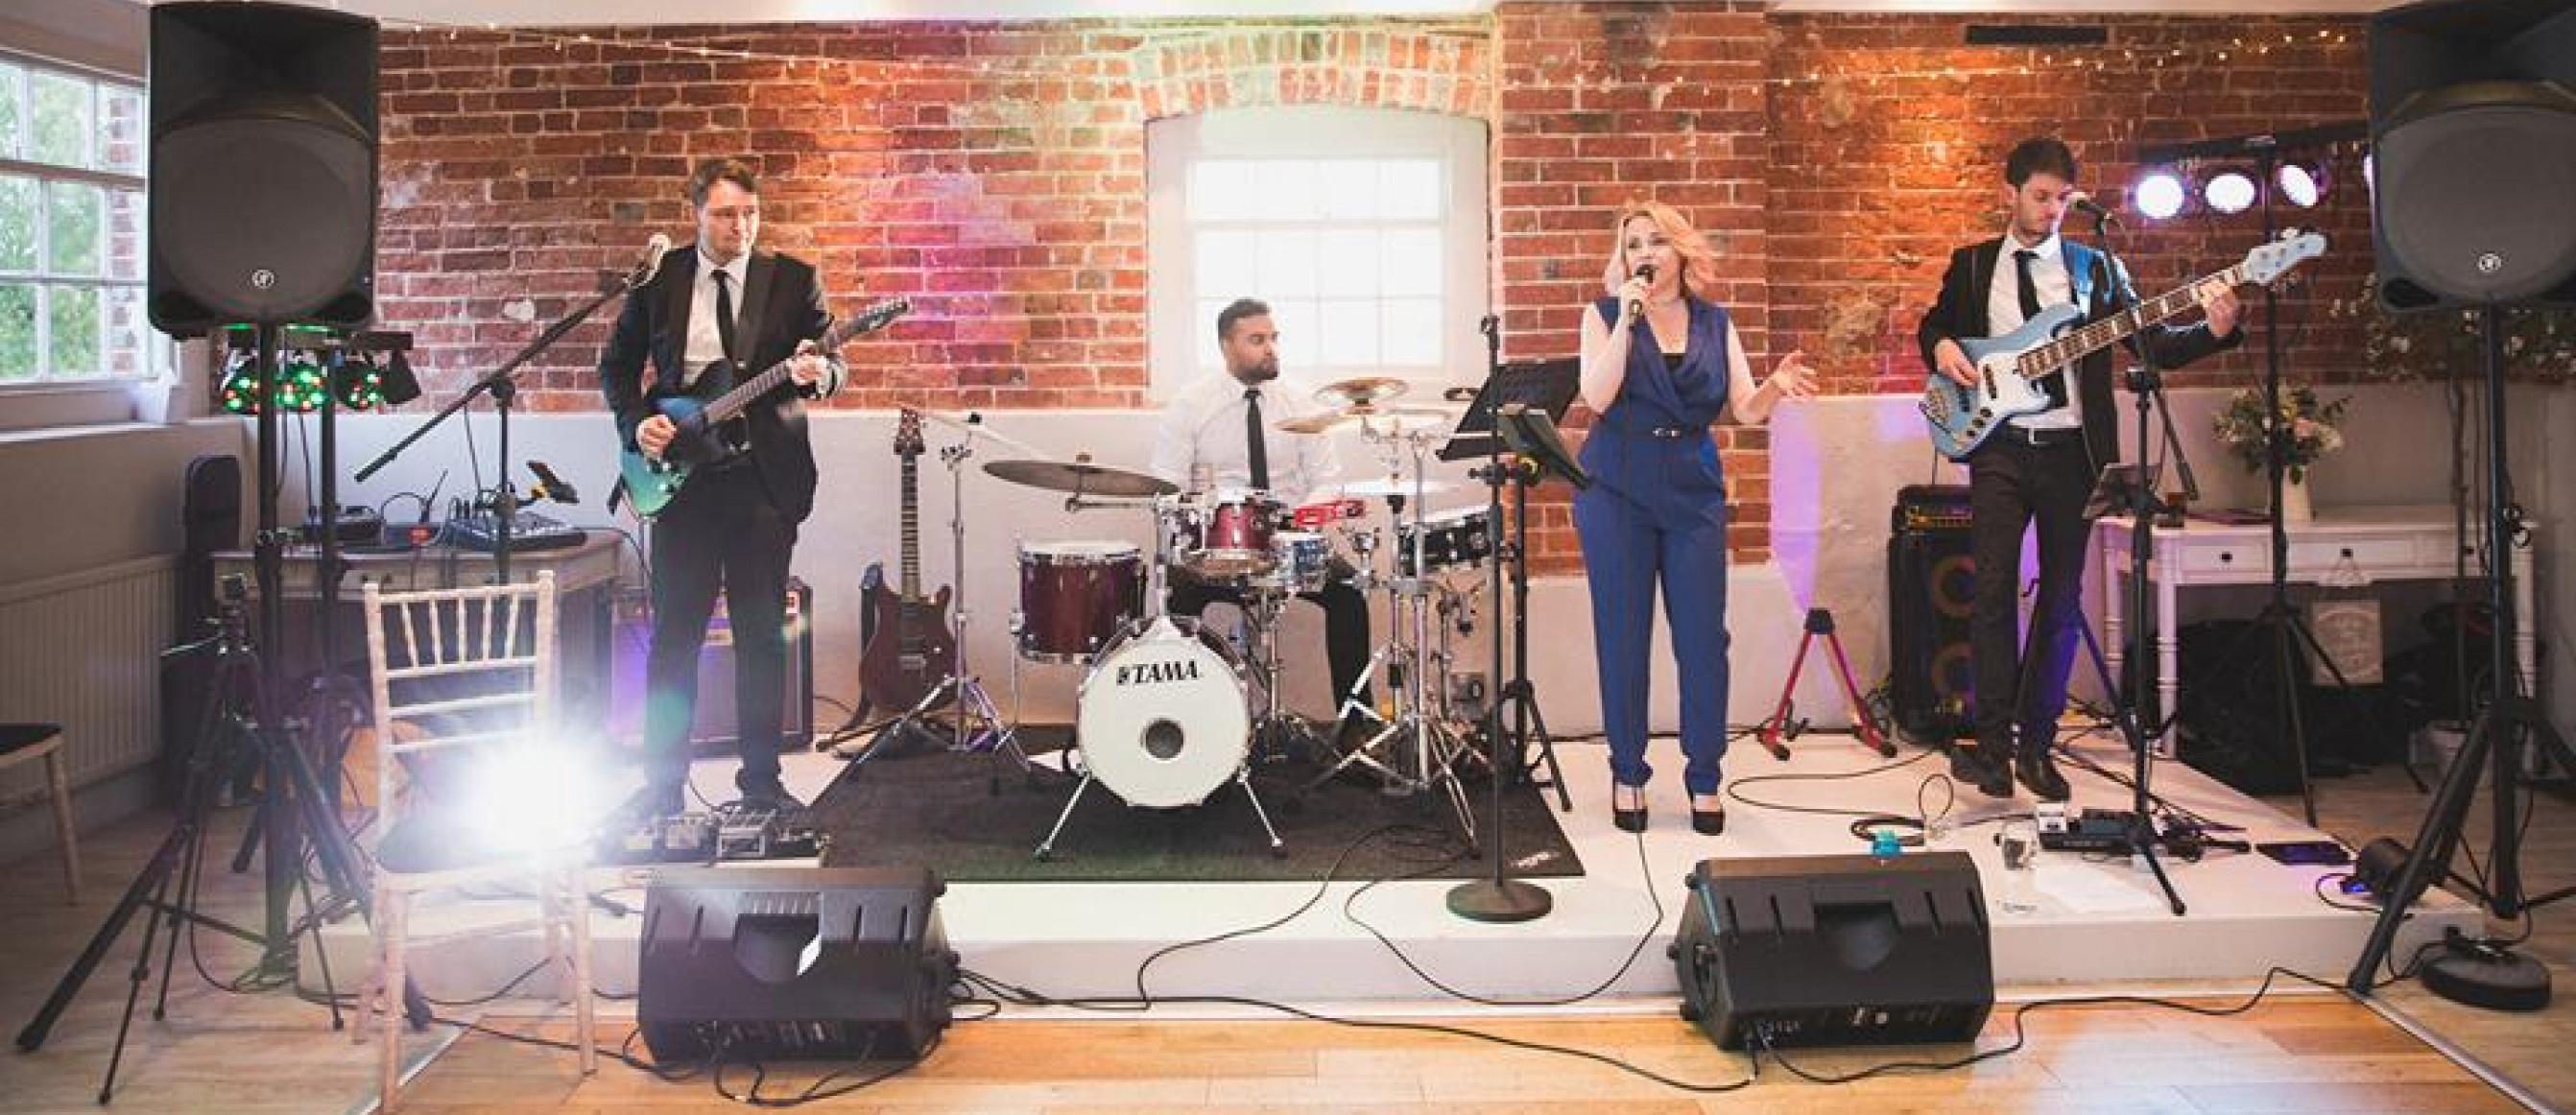 London Bands for Hire | Cover Bands | Weddings | Events - Off The Record